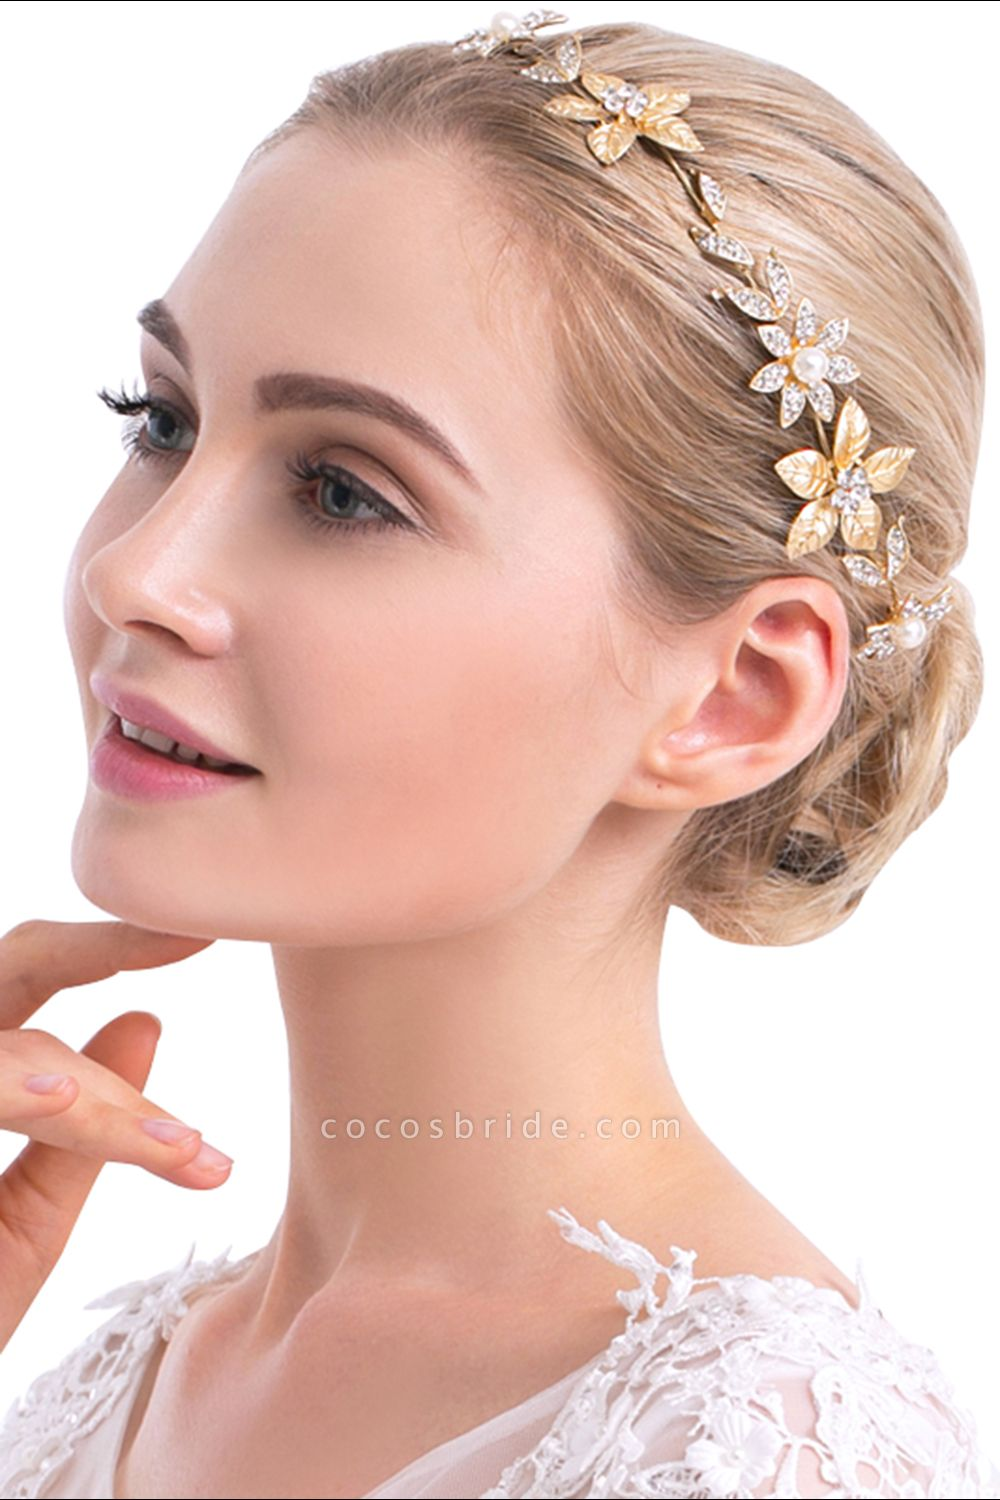 Floral Alloy&Imitation Pearls Daily Wear Hairpins Headpiece with Rhinestone